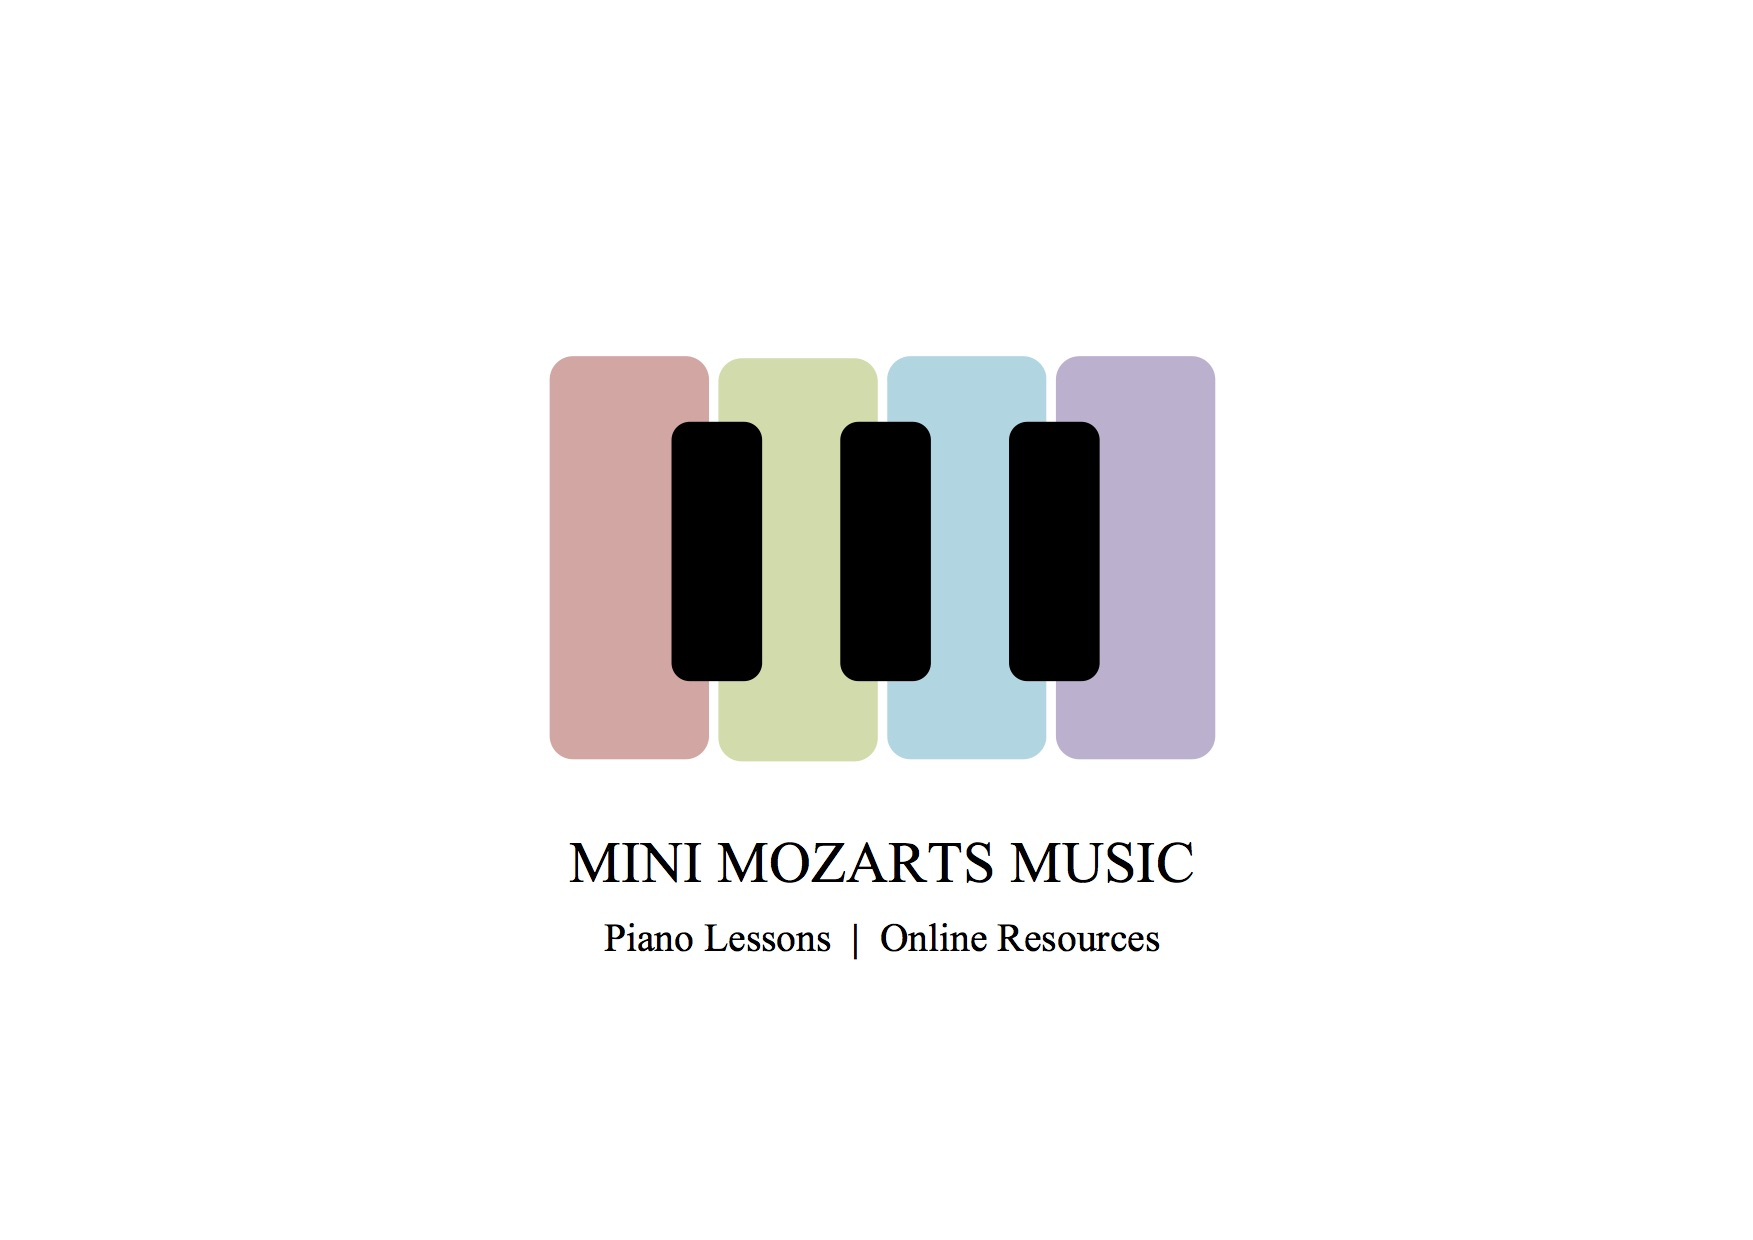 Mini Mozarts Music